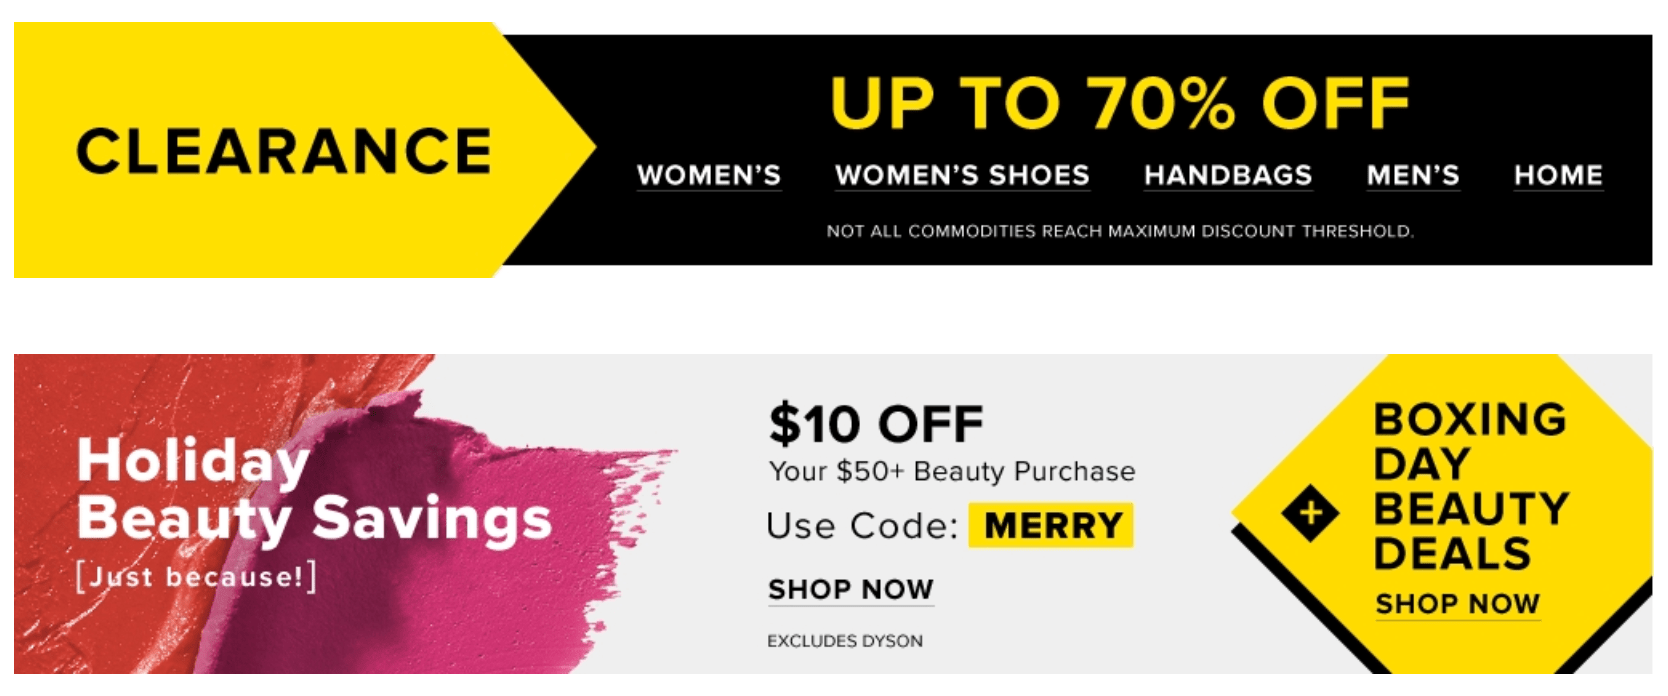 44785a578a Hudson s Bay Canada Boxing Day Sale  Save Up to 70% Off Sitewide +  10 Off   50 Beauty Purchase + More